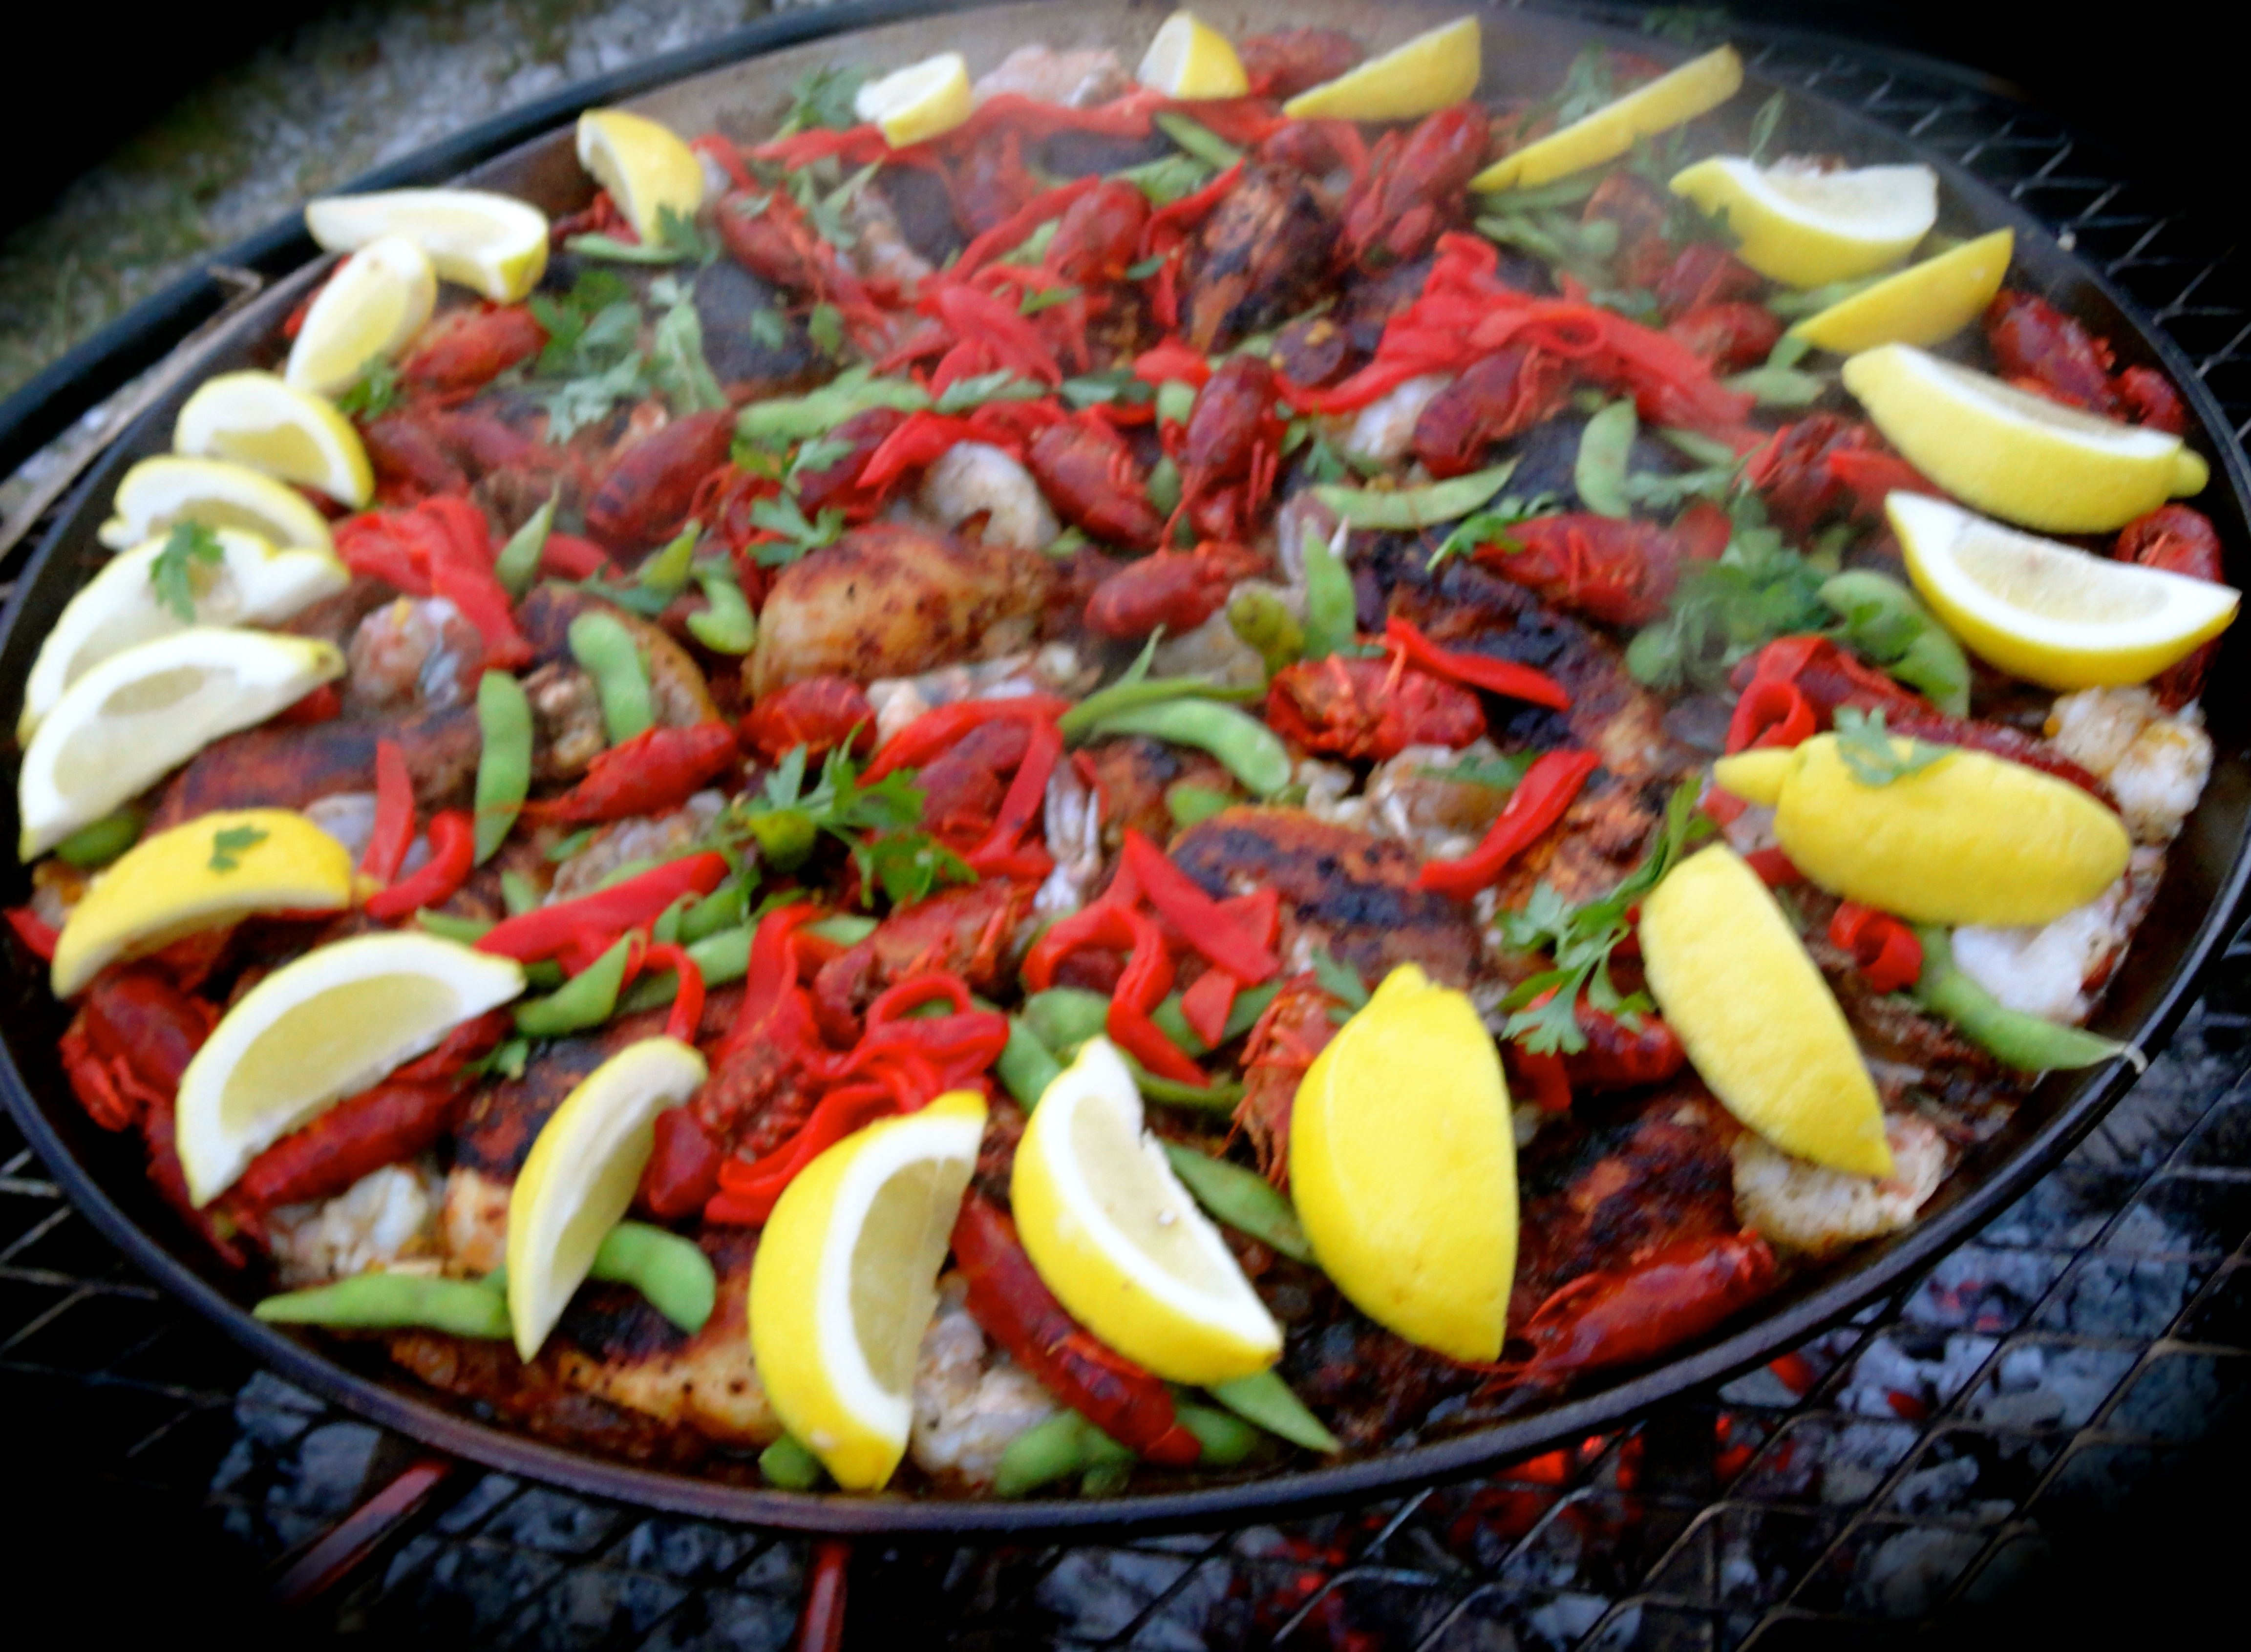 Our paella featuring chicken, chorizo sausage, prawns, and crawfish